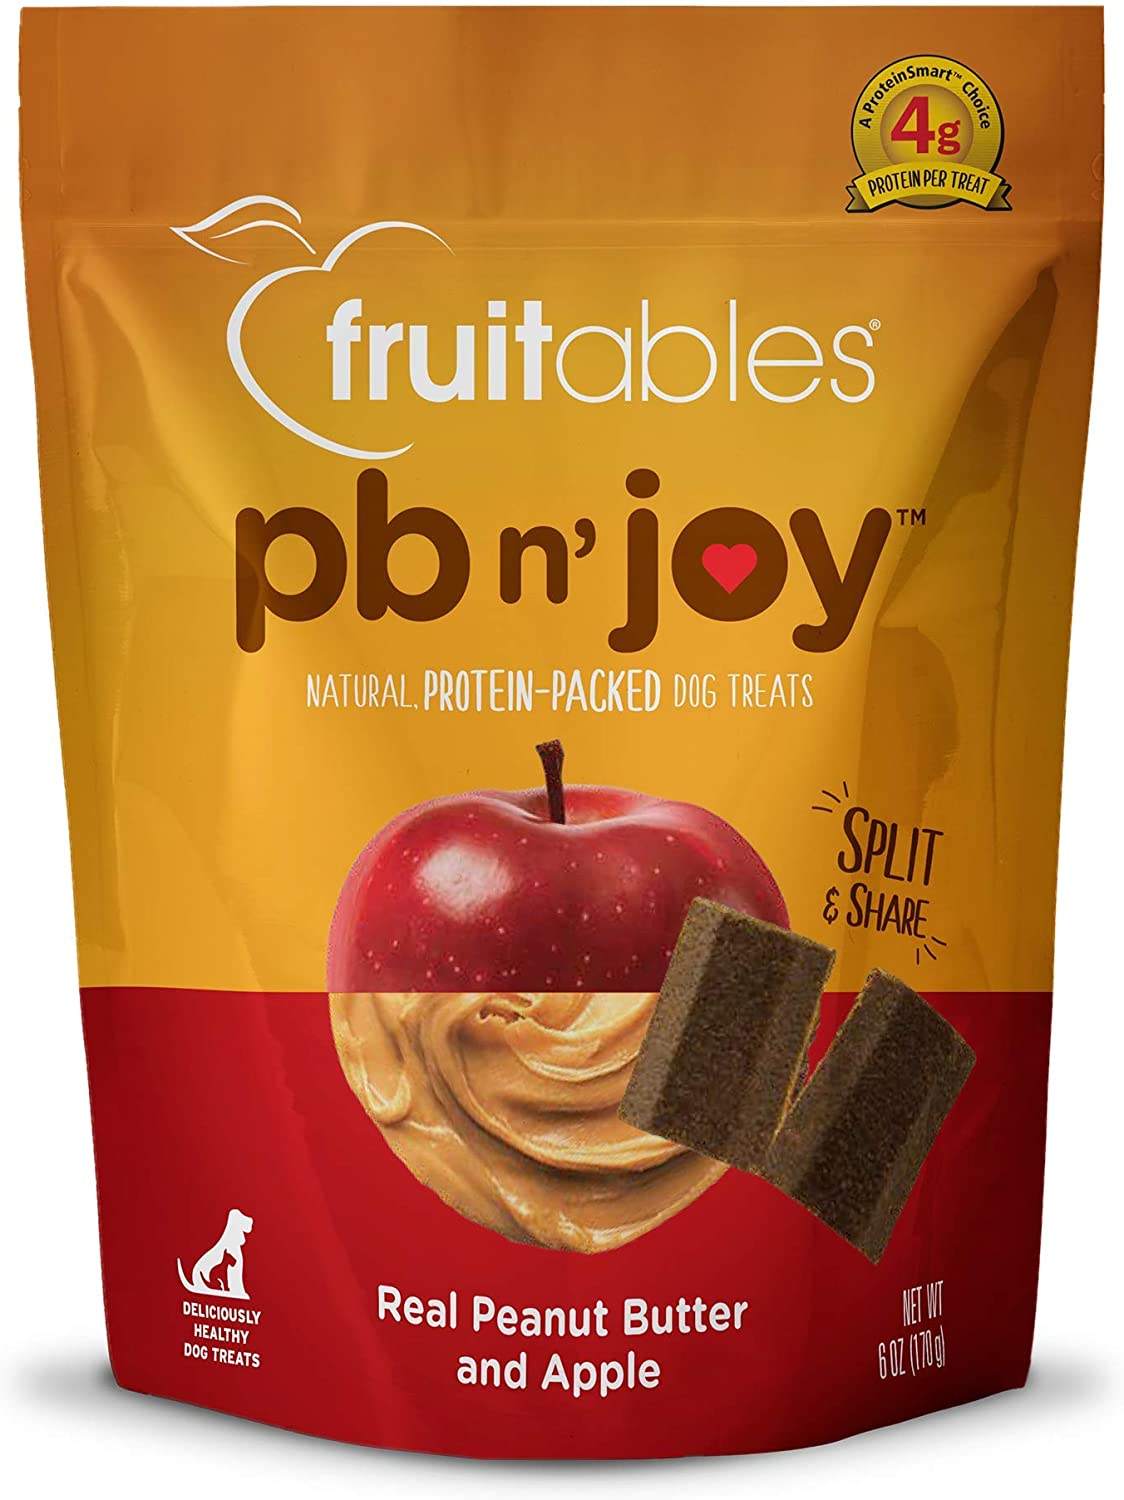 Fruitables pbn'joy Dog Treats - High Protein Natural Dog Treats - Made with Real Peanut Butter - Free of Wheat, Corn and Soy - 6 Ounces